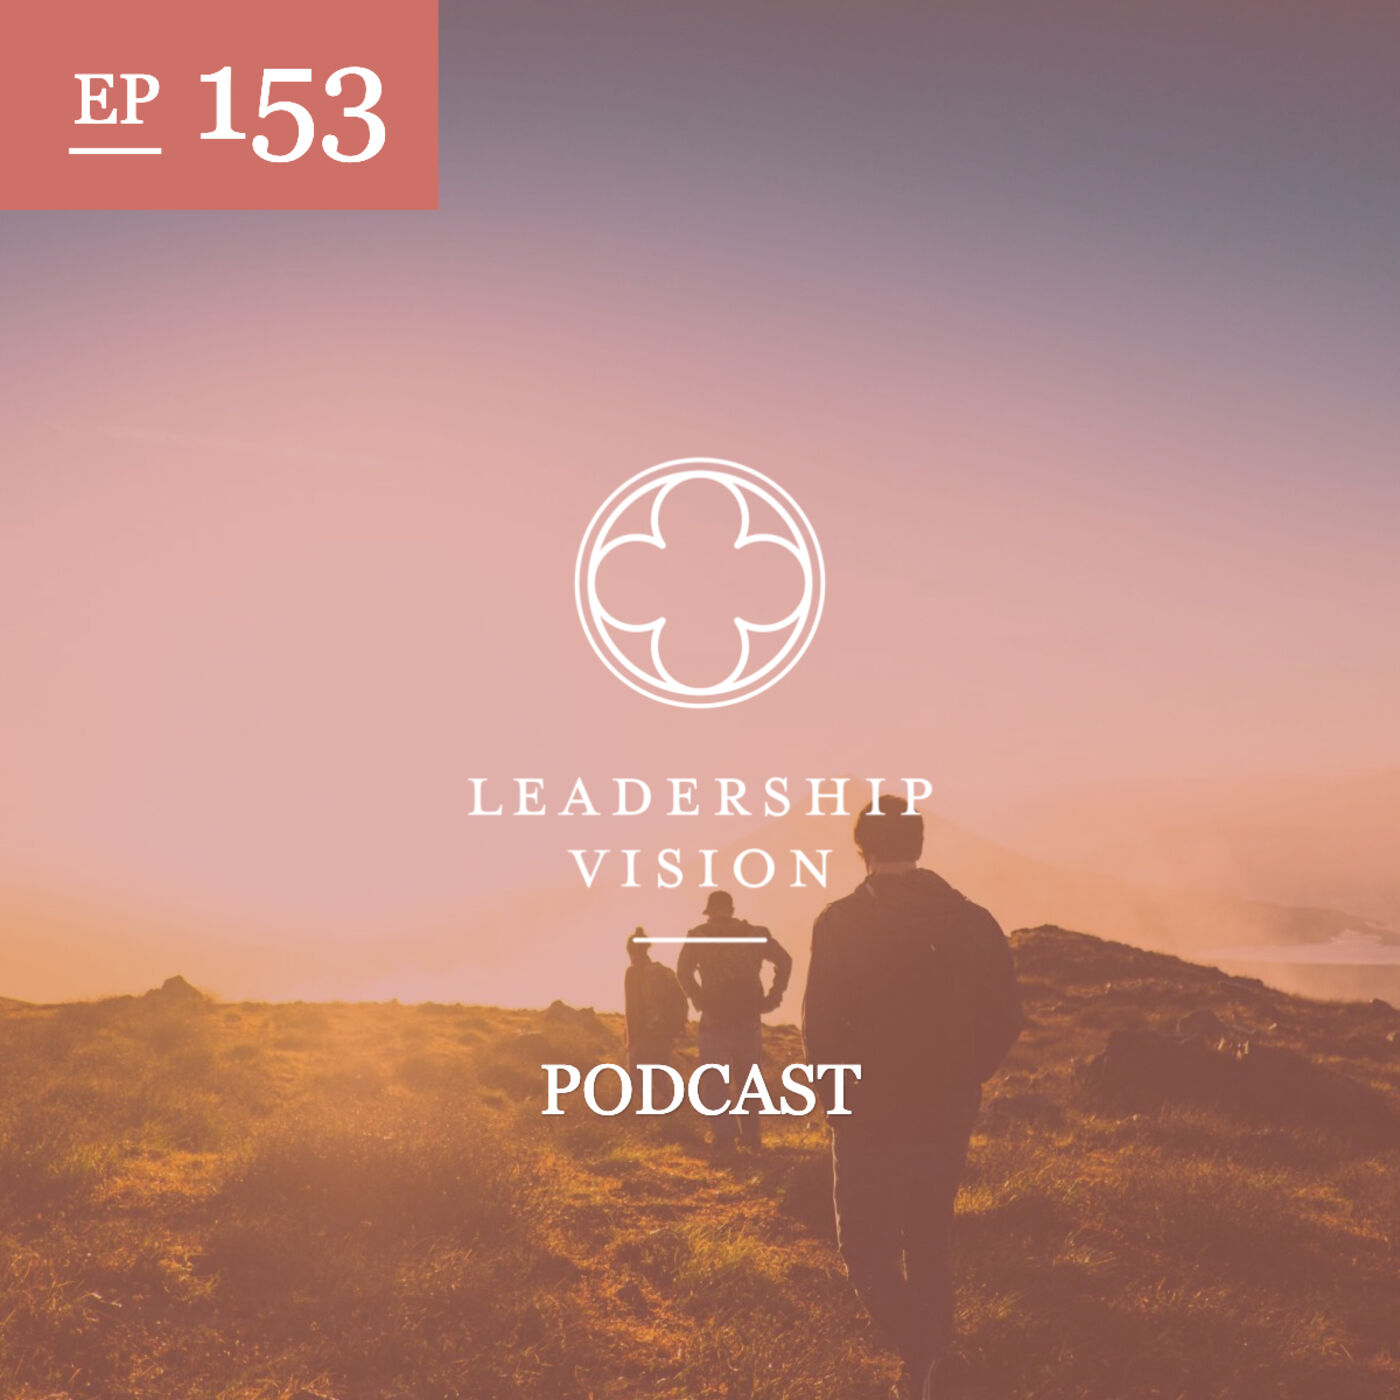 An Introduction to the Leadership Vision Values